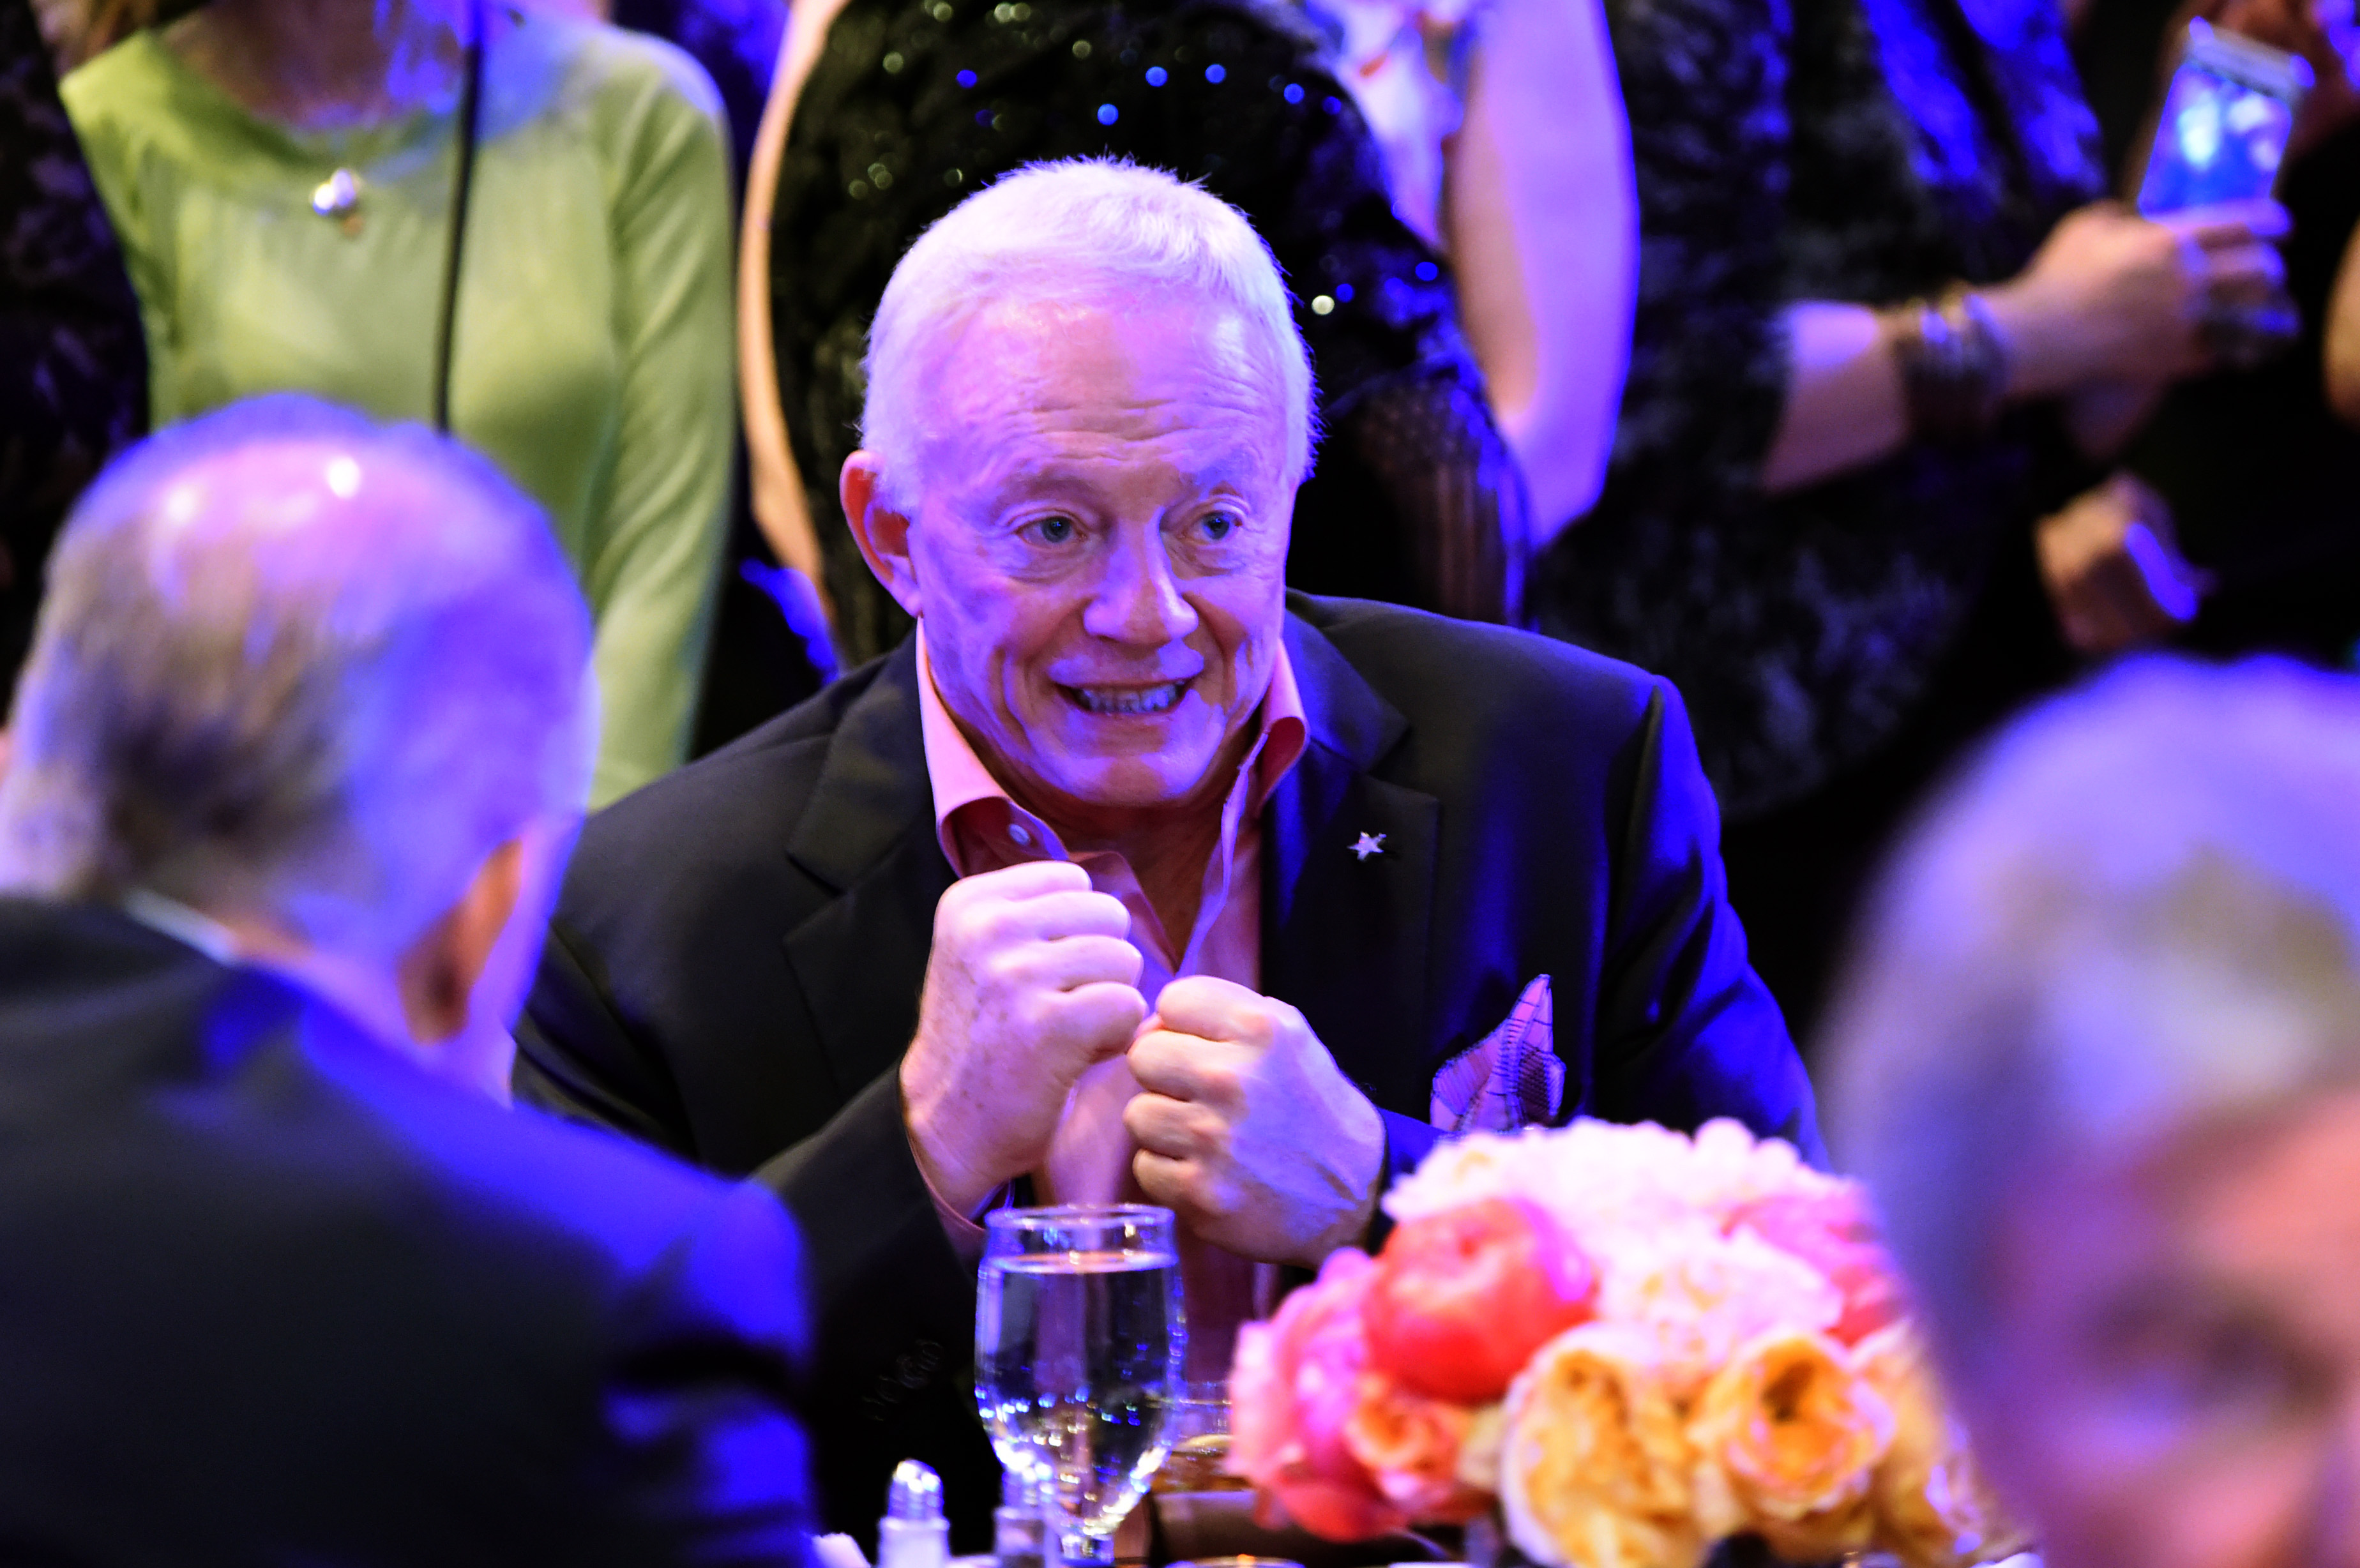 Cowboys owner Jerry Jones has an impressive $8.6 billion net worth, but he pales in comparison to the richest NFL owner in 2020.